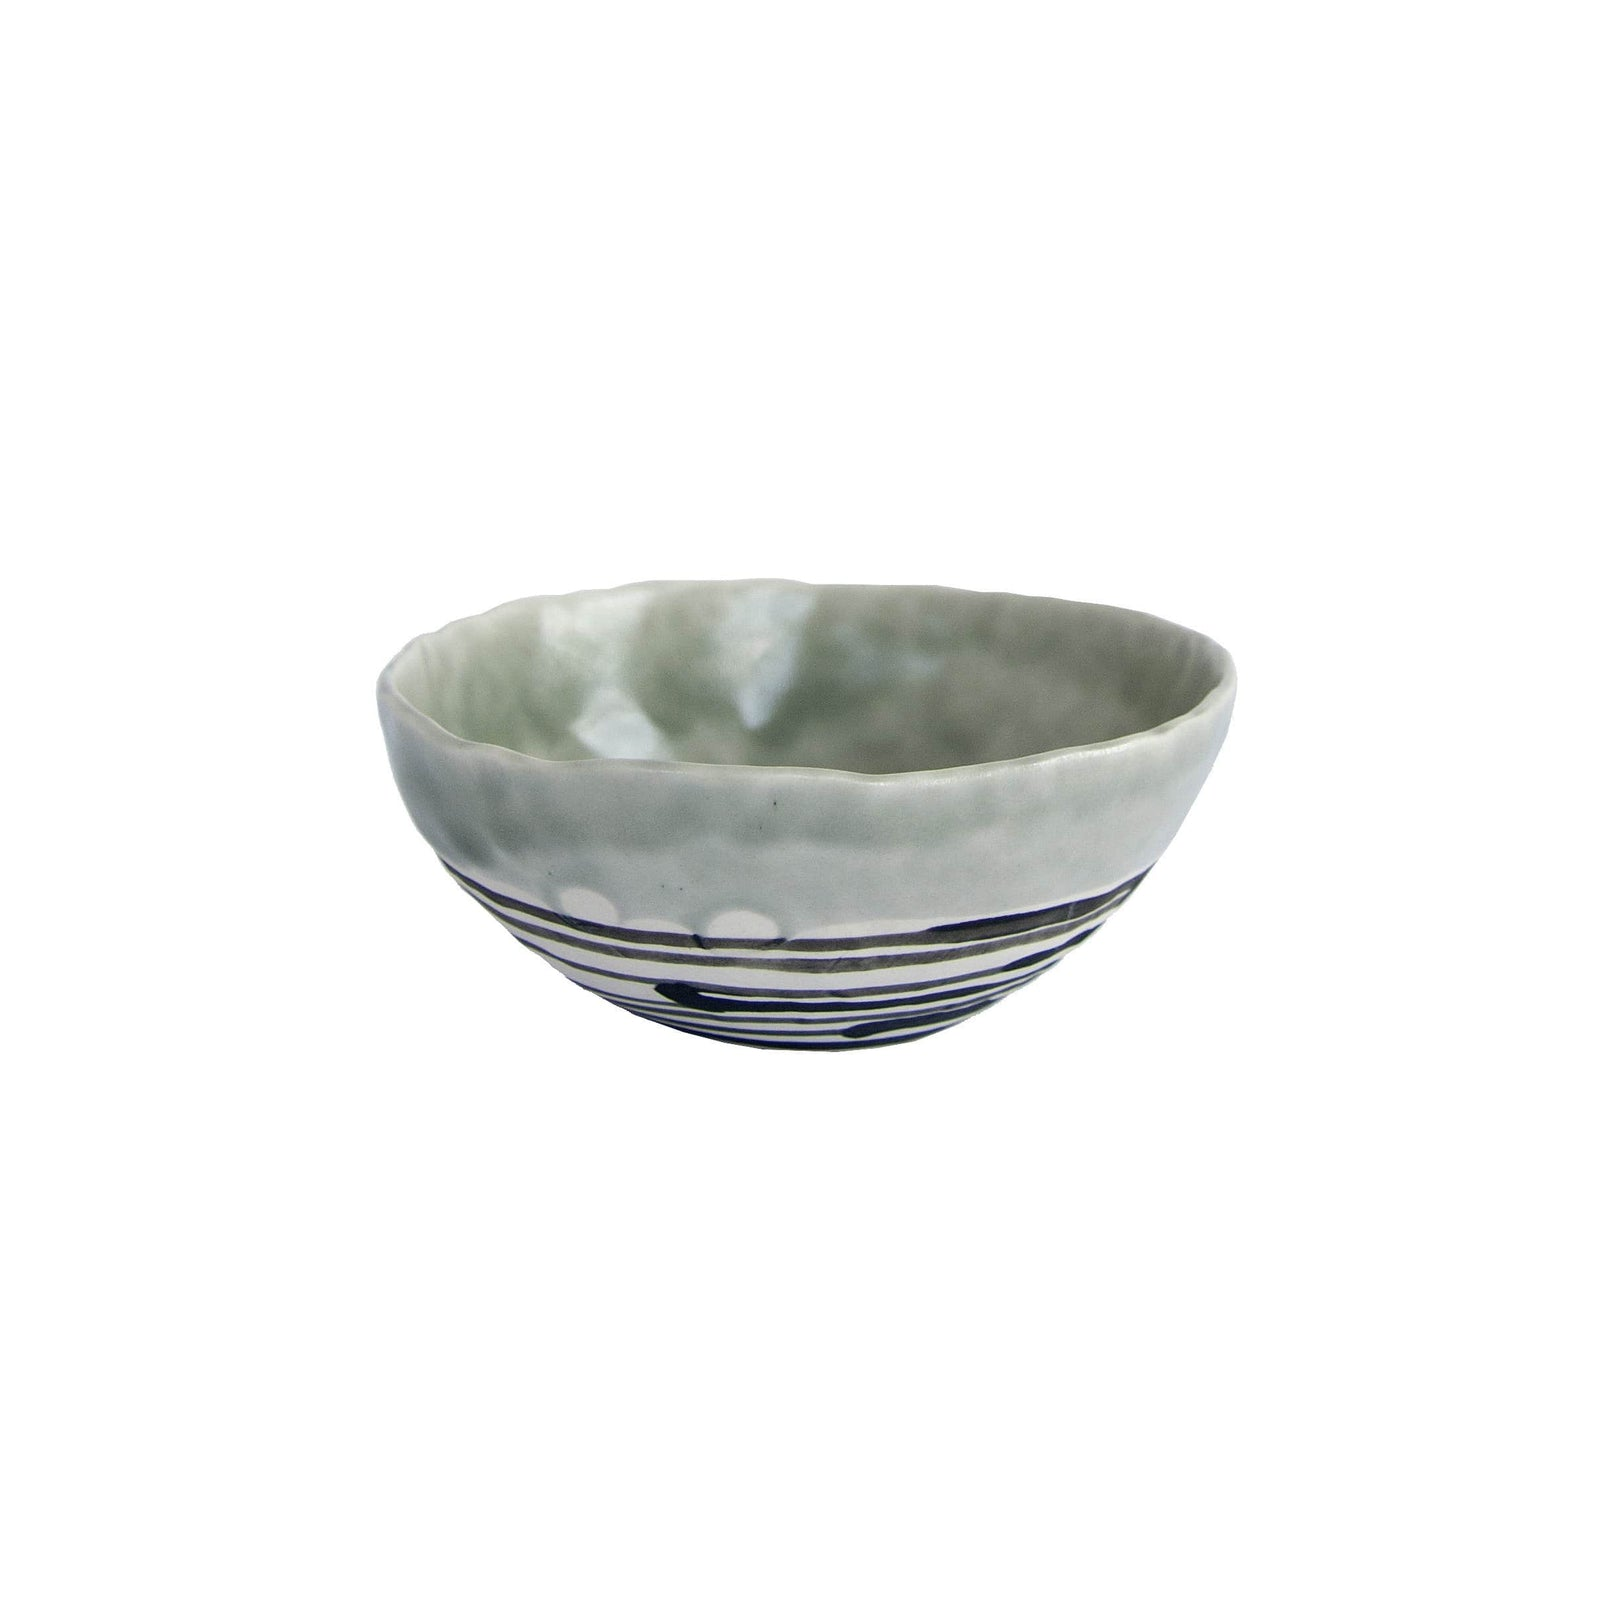 Elizabeth Benotti Handmade Ceramics Pottery Sage Pinched Striped Bowl, Medium